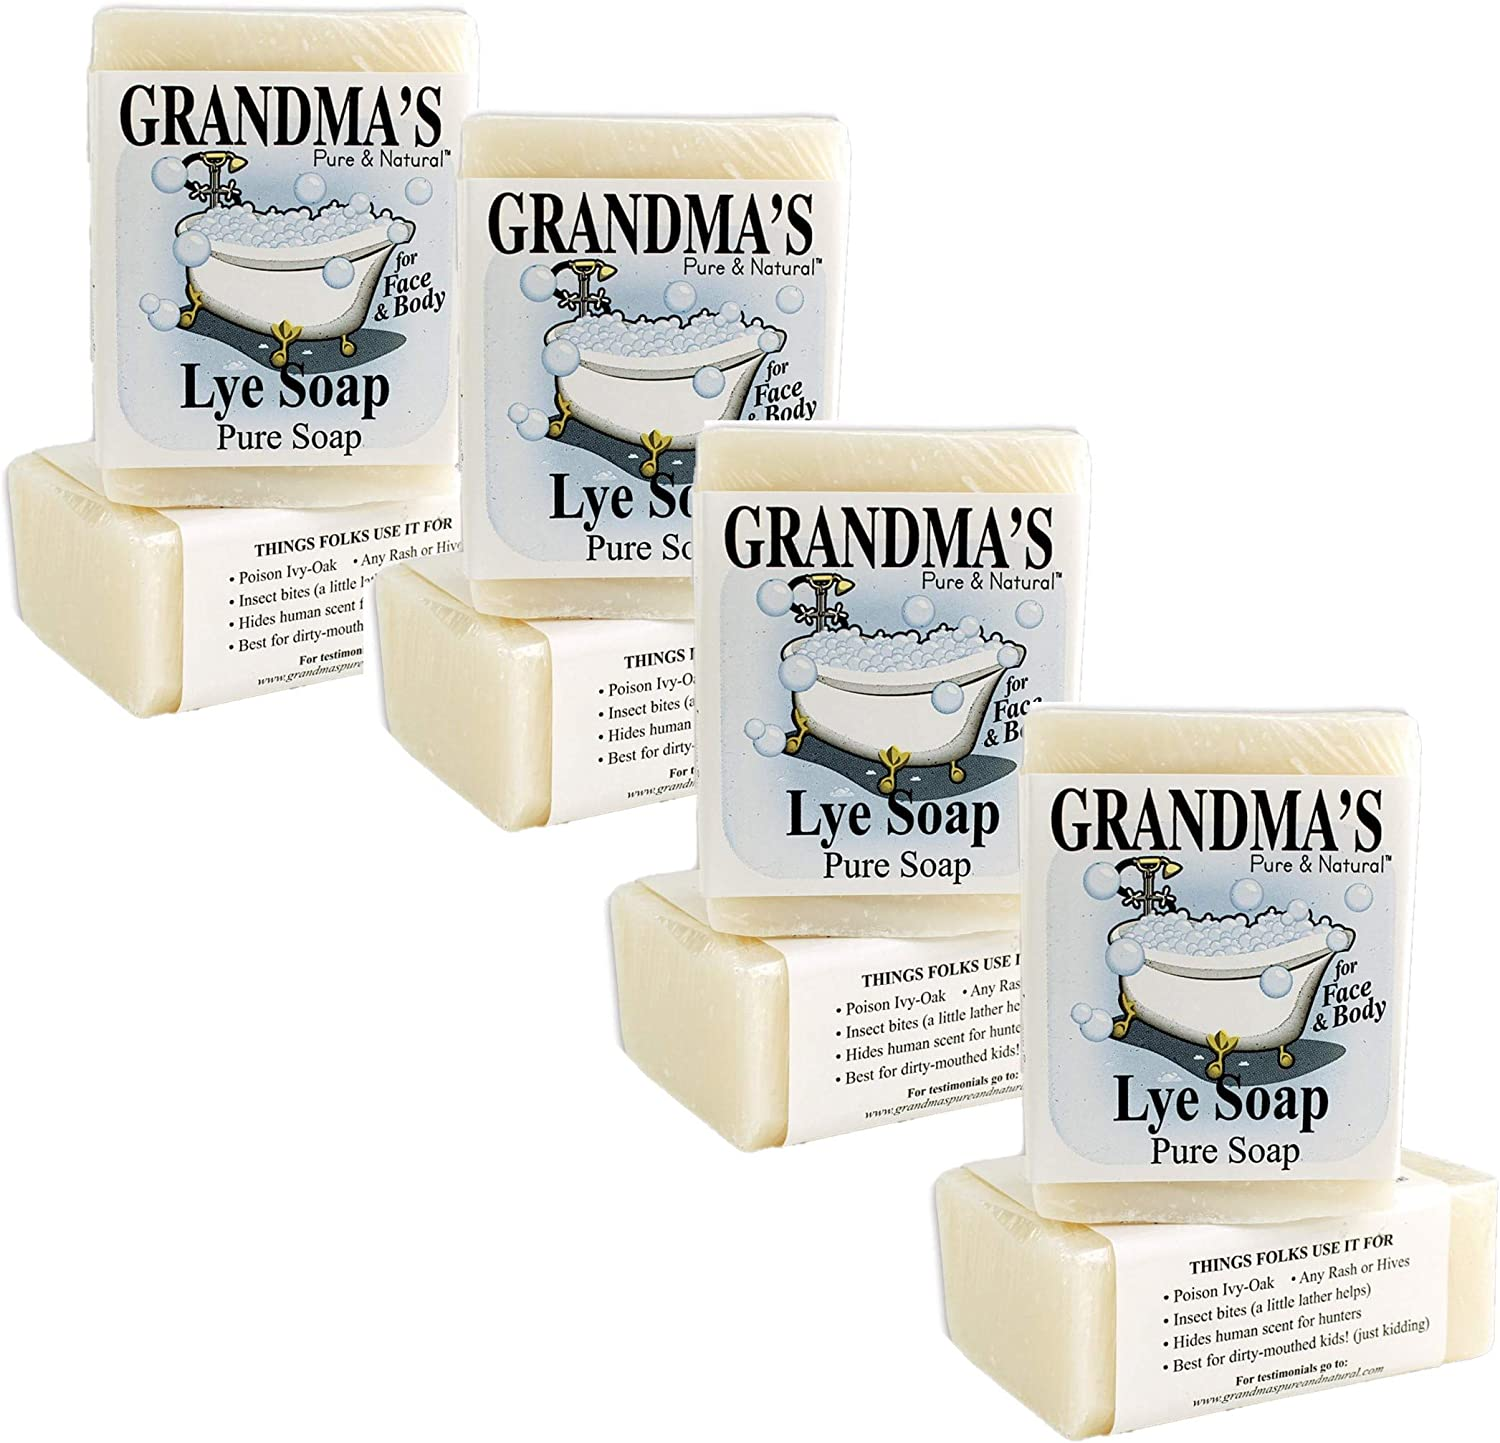 Grandma's Pure Lye Soap Bar - 6.0 oz Unscented Face & Body Wash Cleans with No Detergens, Dyes & Fragrances - 60018 (8 Pack)